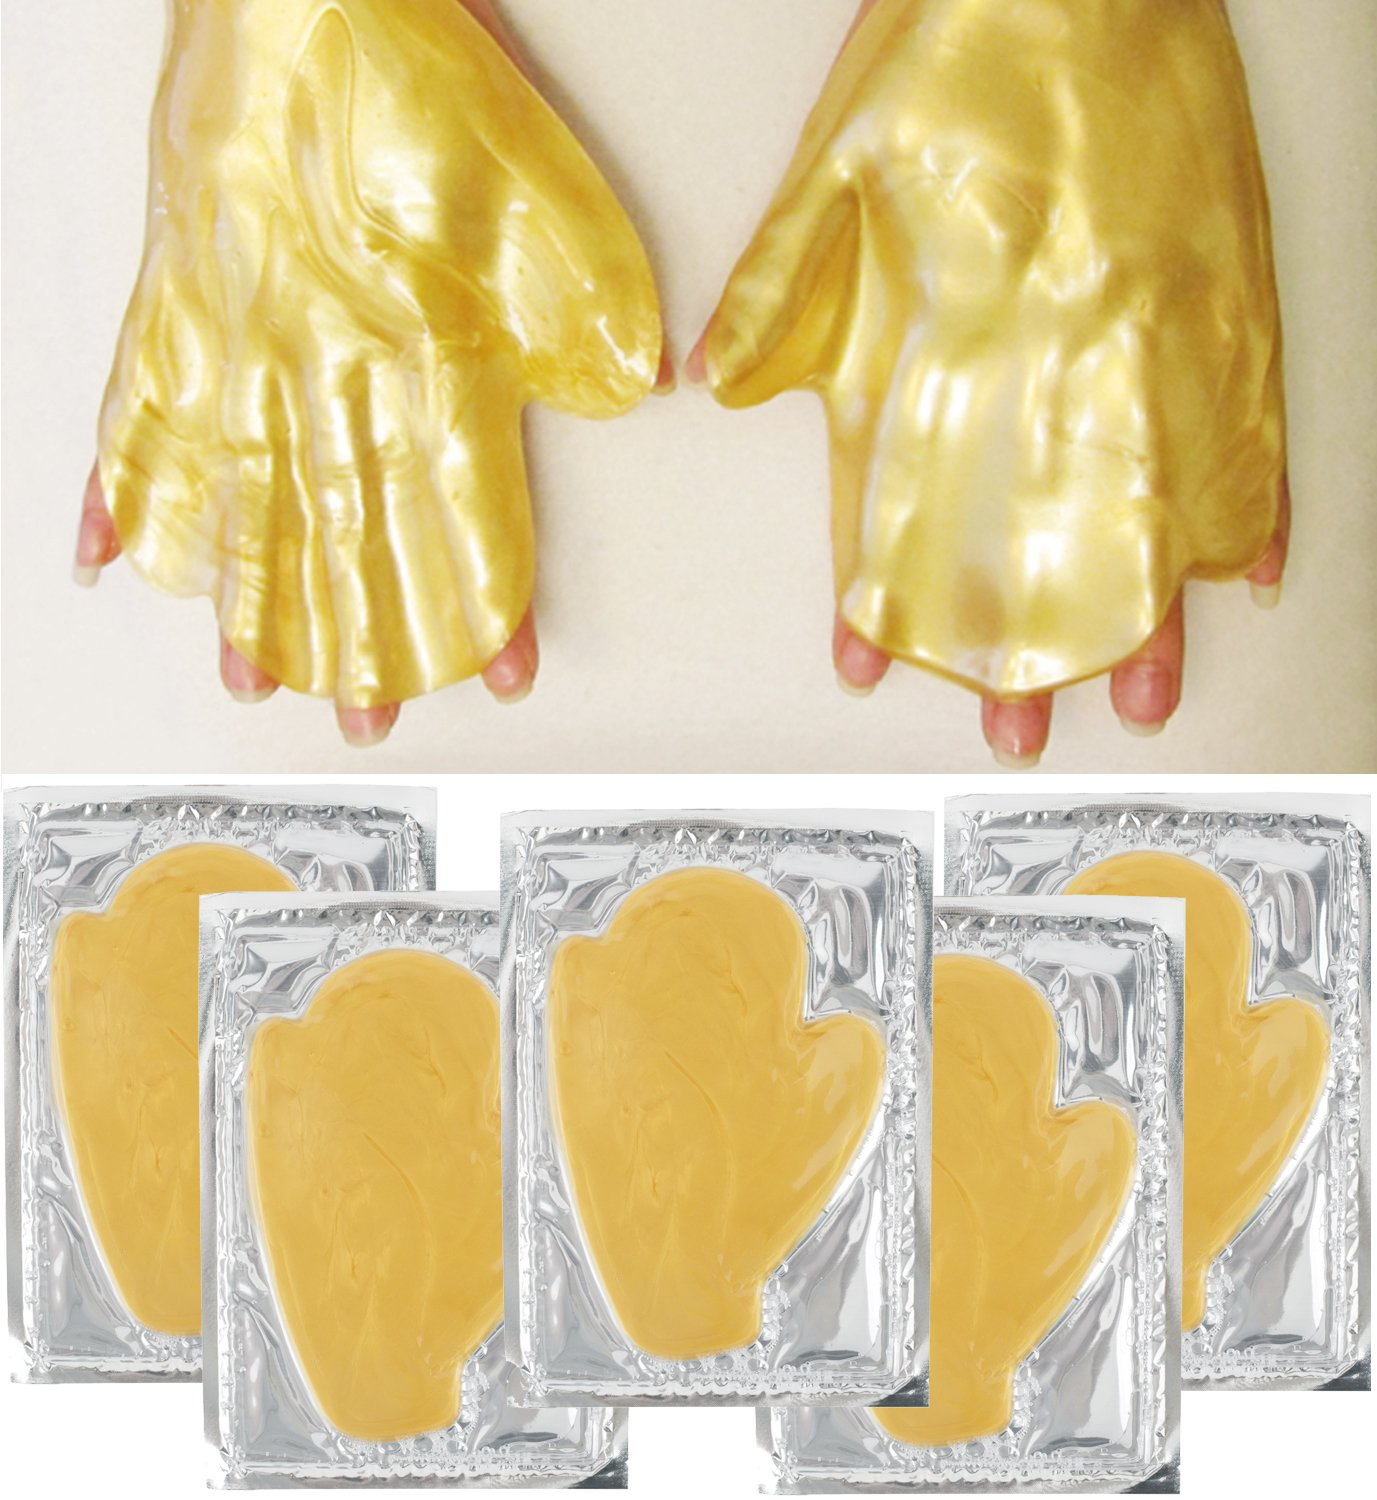 Anti Aging Treatments Set / Kit of 5 Pairs Hands Newborn 24 K Gold / Golden Collagen Gel Crystal Masks for Intense Hydration / Moisturizing, Firming / Lifting, Skin Elasticity, Smoothing and Wrinkles Removal VAGA